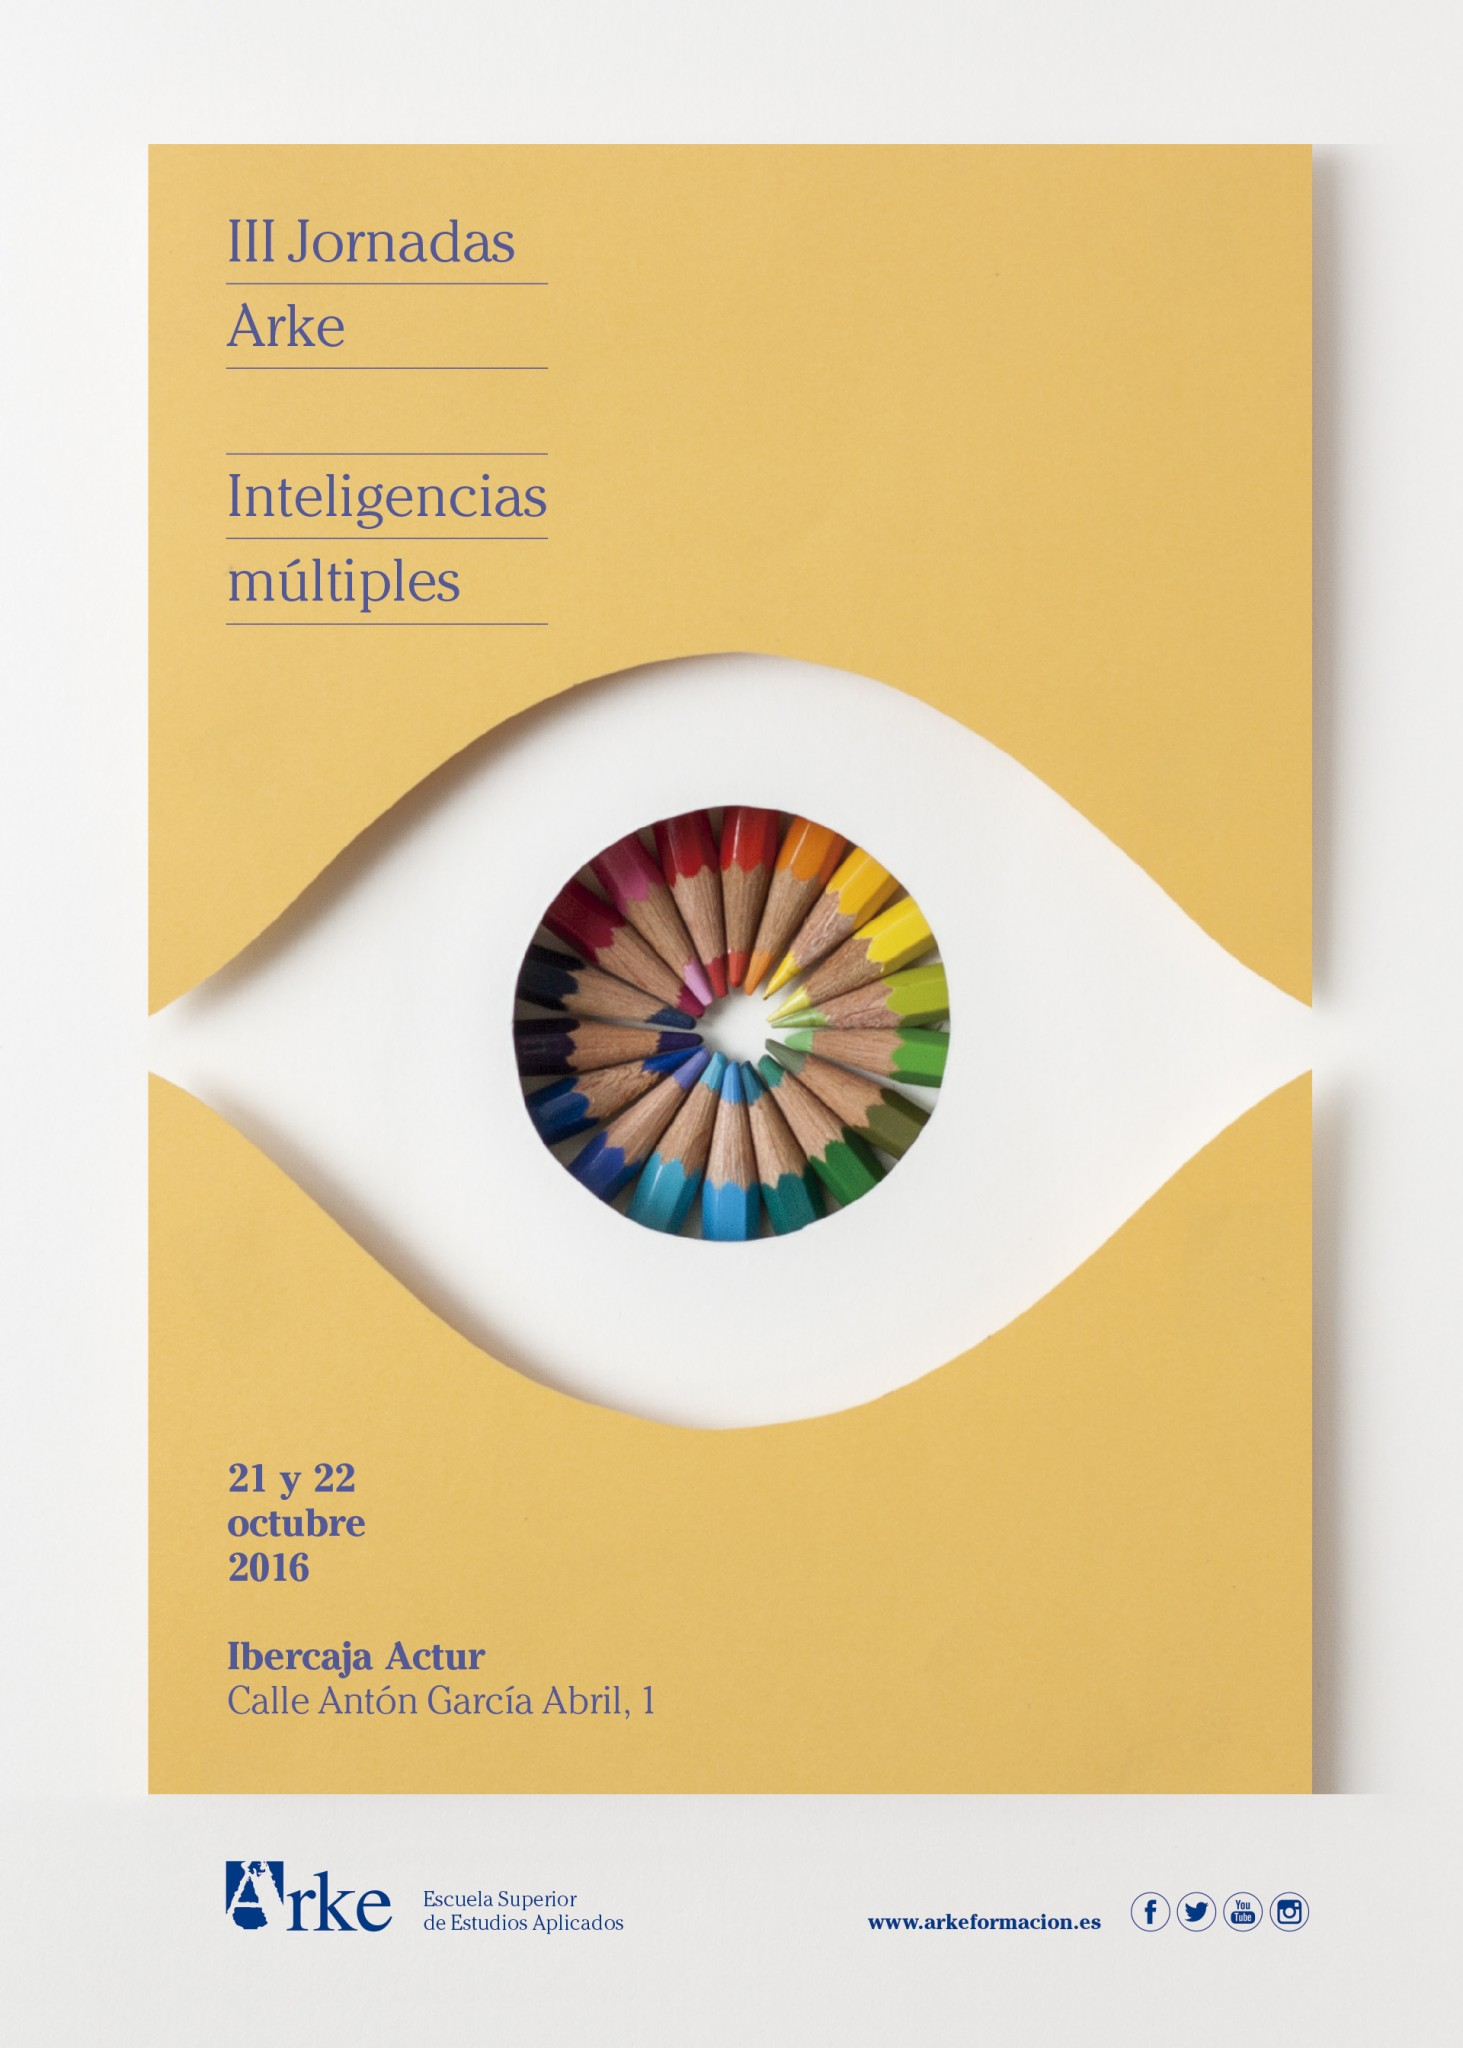 inteligencias_multiples_arke